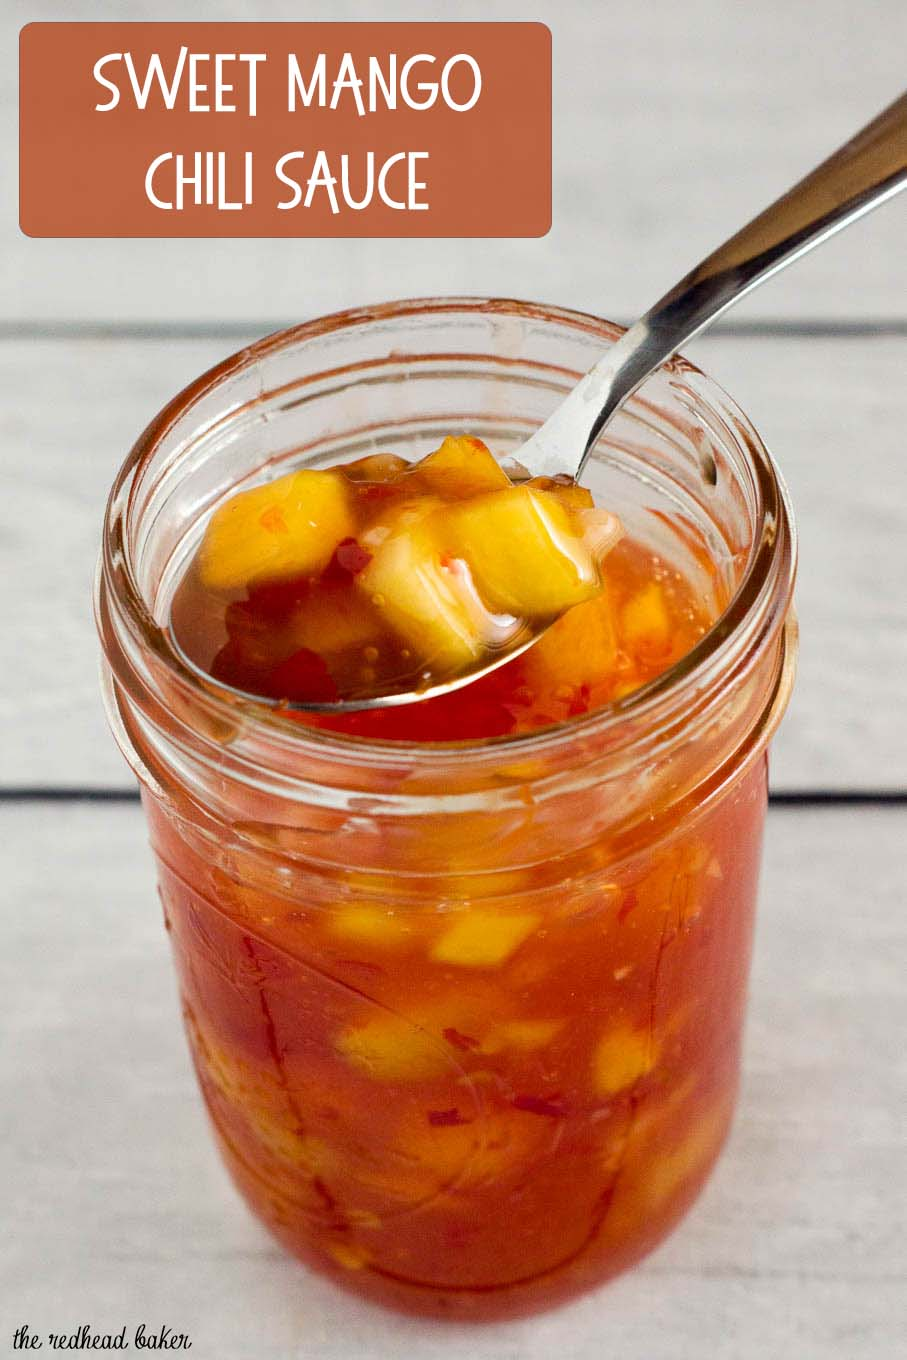 This sticky, sweet mango chili sauce is easy to make and so addictive! Use it to dip shrimp, chicken or fresh spring rolls.